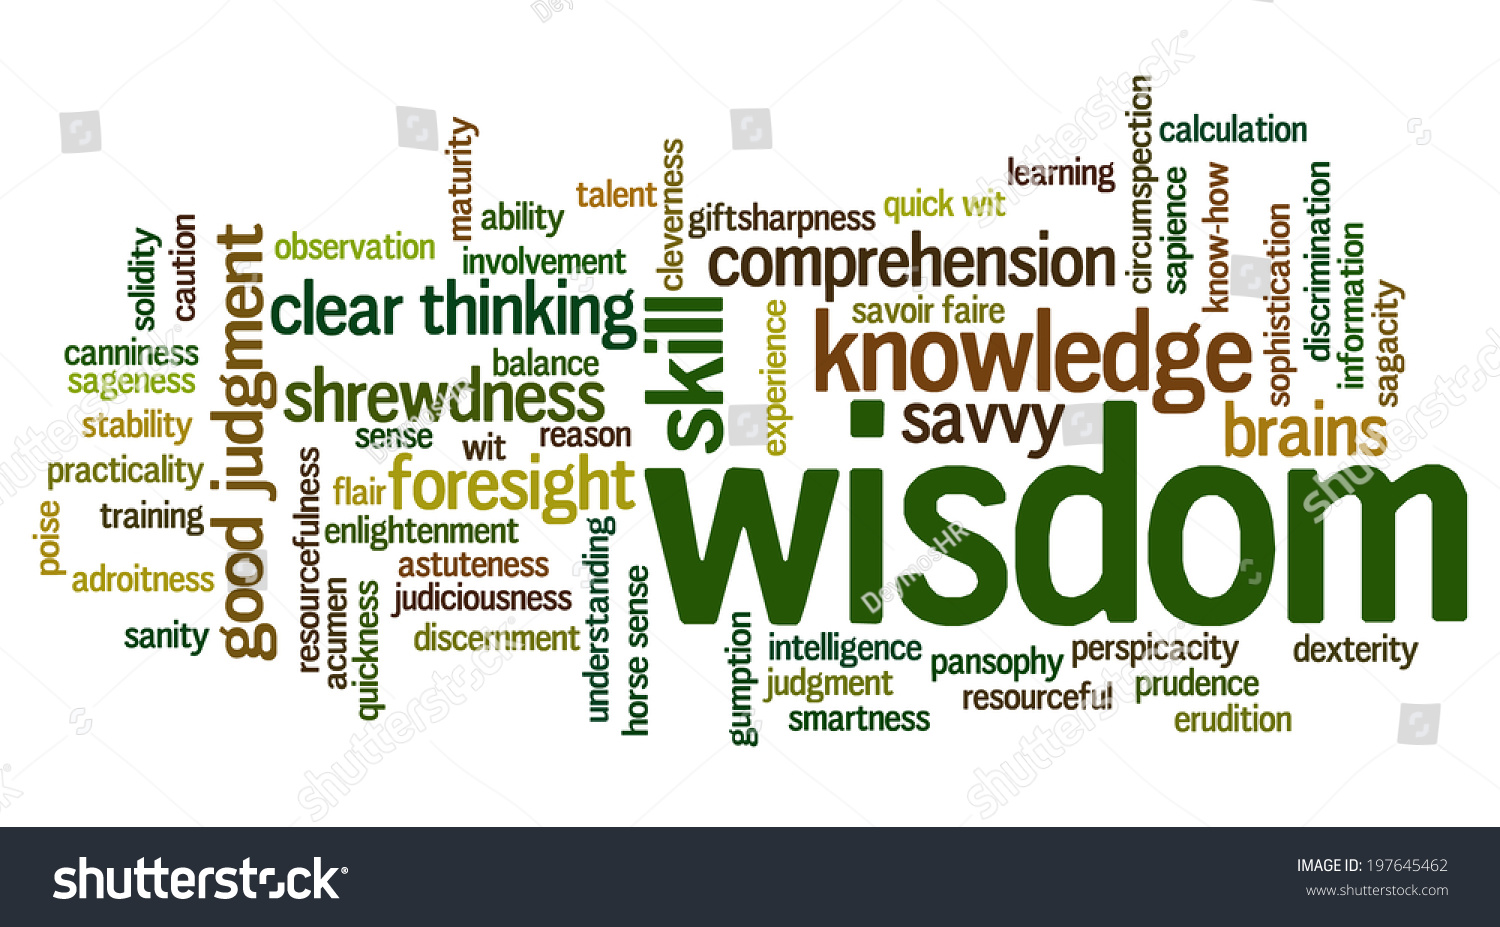 Word Cloud Containing Terms Related Wisdom Stock. Insurance Agent Resume Sample Template. Example Cover Letter Nz. What Is Nucleic Acid Template. Happy New Year Email Template. Resume For English Teacher Template. What Is A Credit Sales Invoice Template. Proposal For Janitorial Services. Thank You Gifts For Boss Template